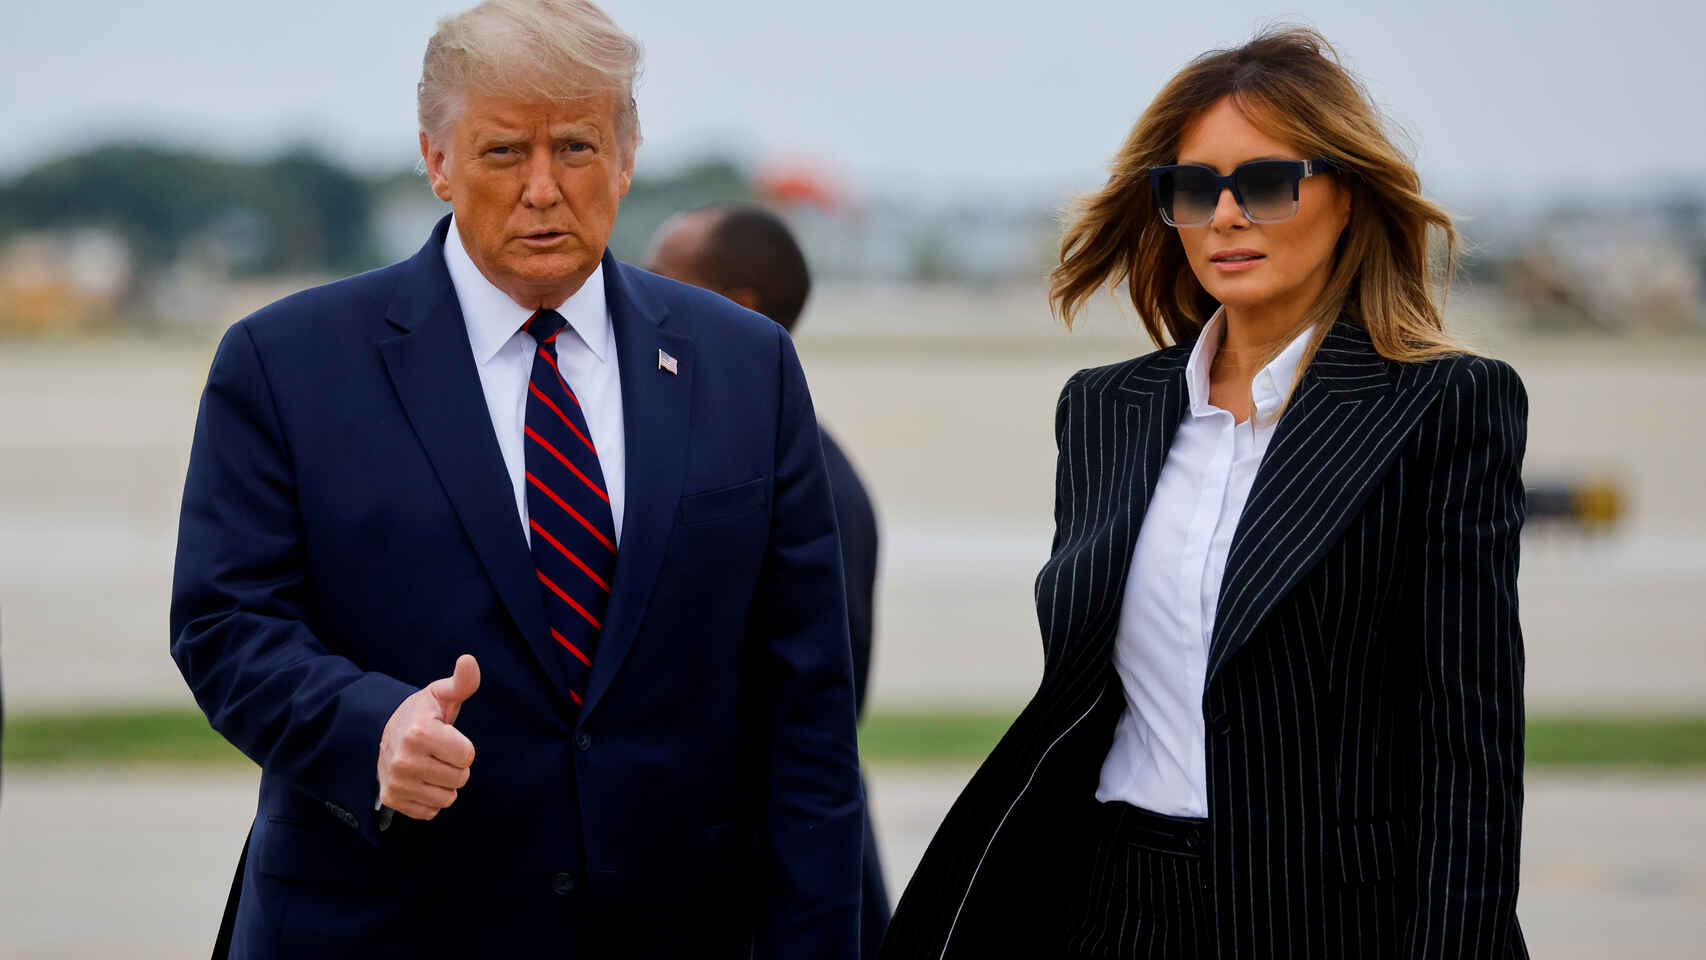 President Donald Trump tweets he and first lady Melania Trump test positive for Covid-19